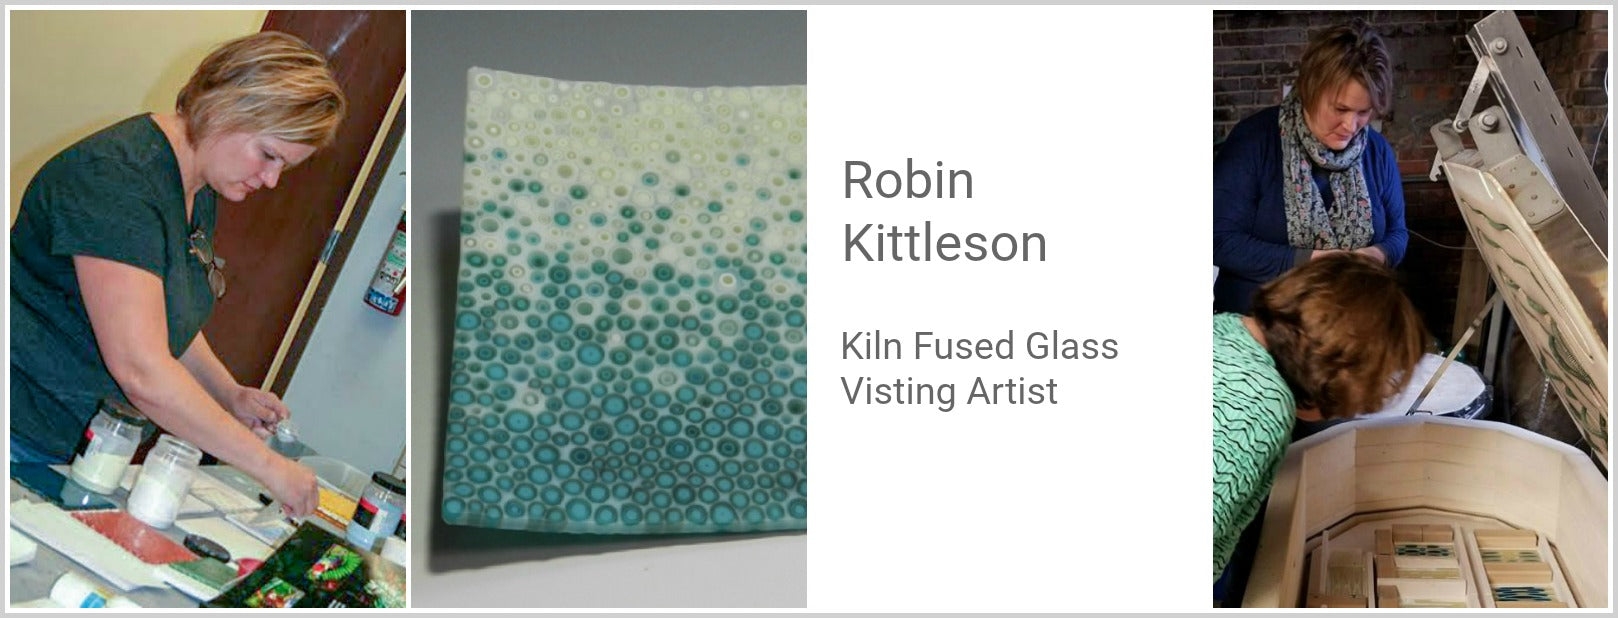 Robin Kittleson, Kiln Fused Glass, Visiting Artist